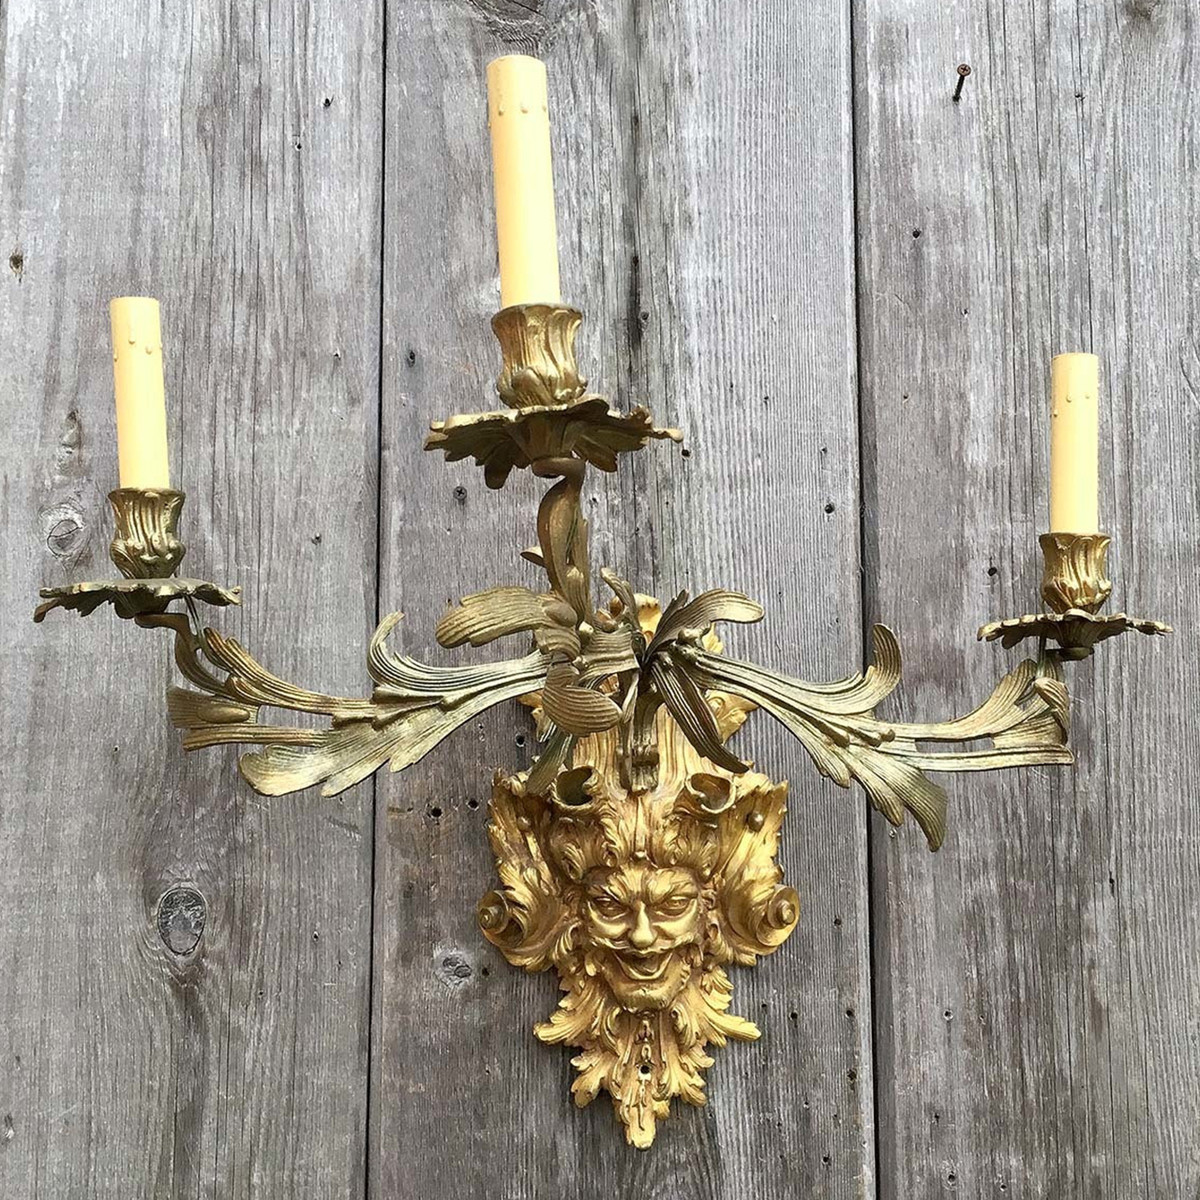 608427 - Antique French Wall Candle Arm Sconce